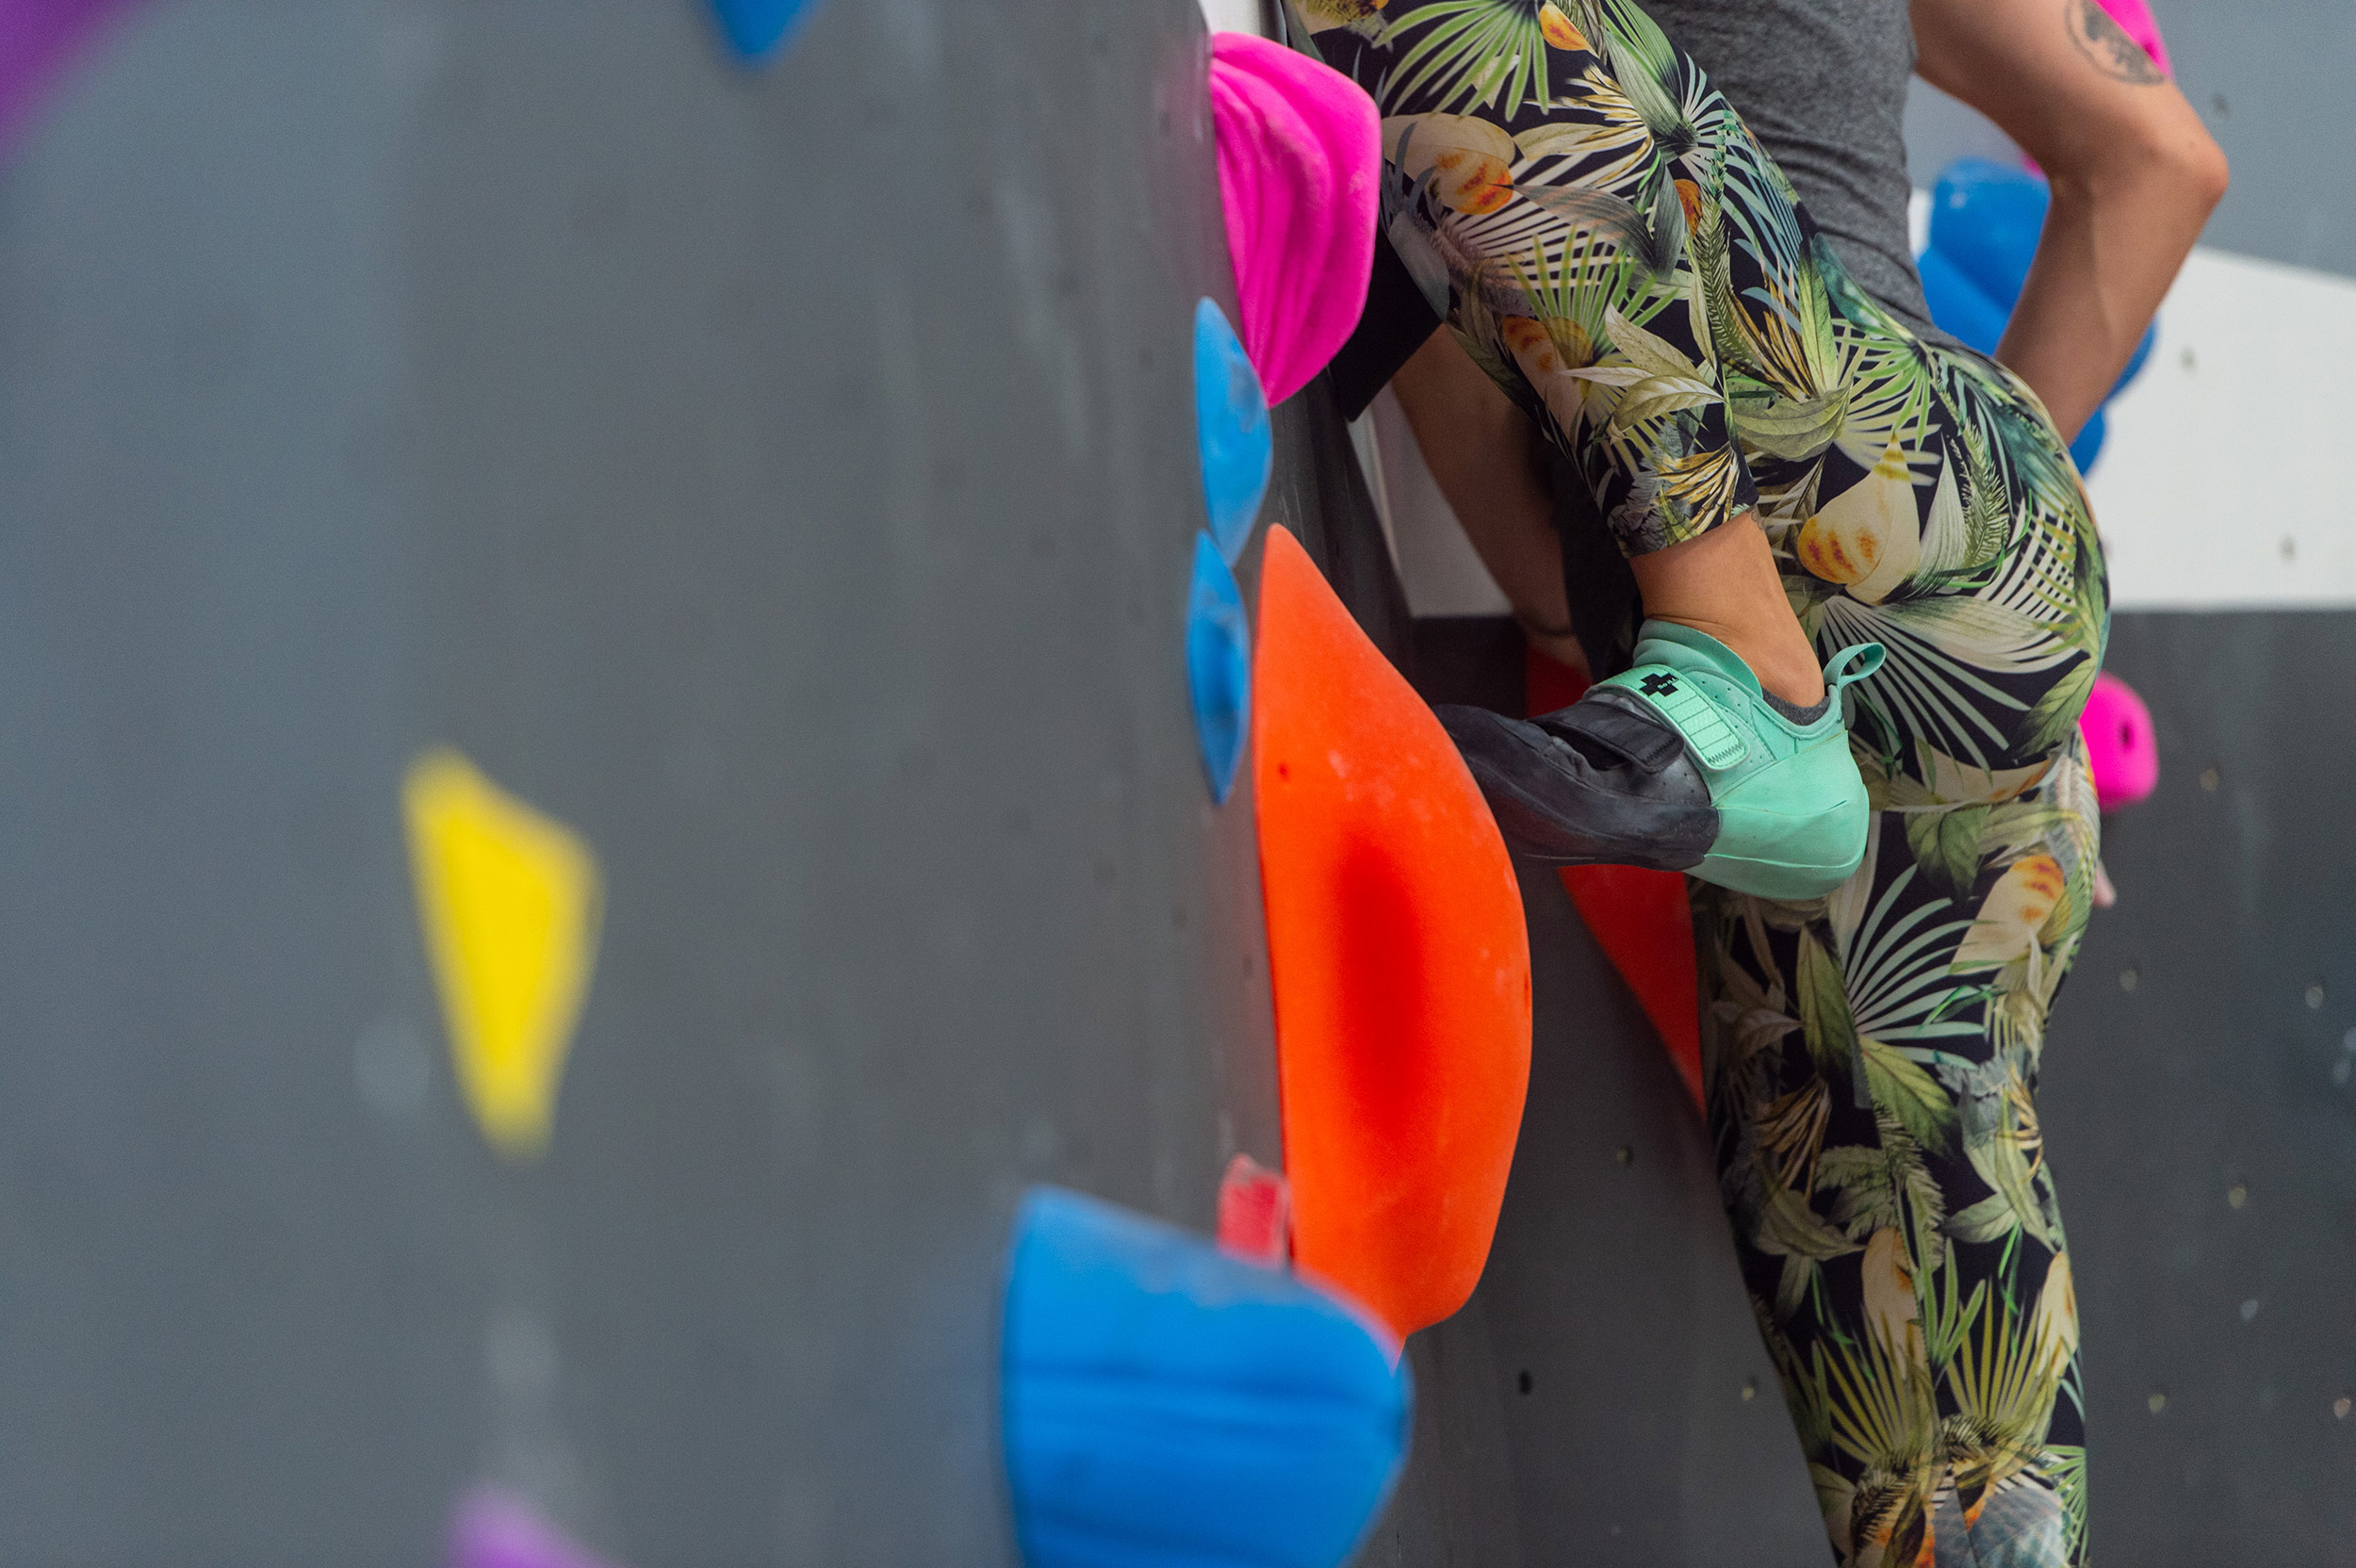 Climbing shoes, sometimes called bouldering shoes, are specifically designed to make a beneficial impact on ability on the wall